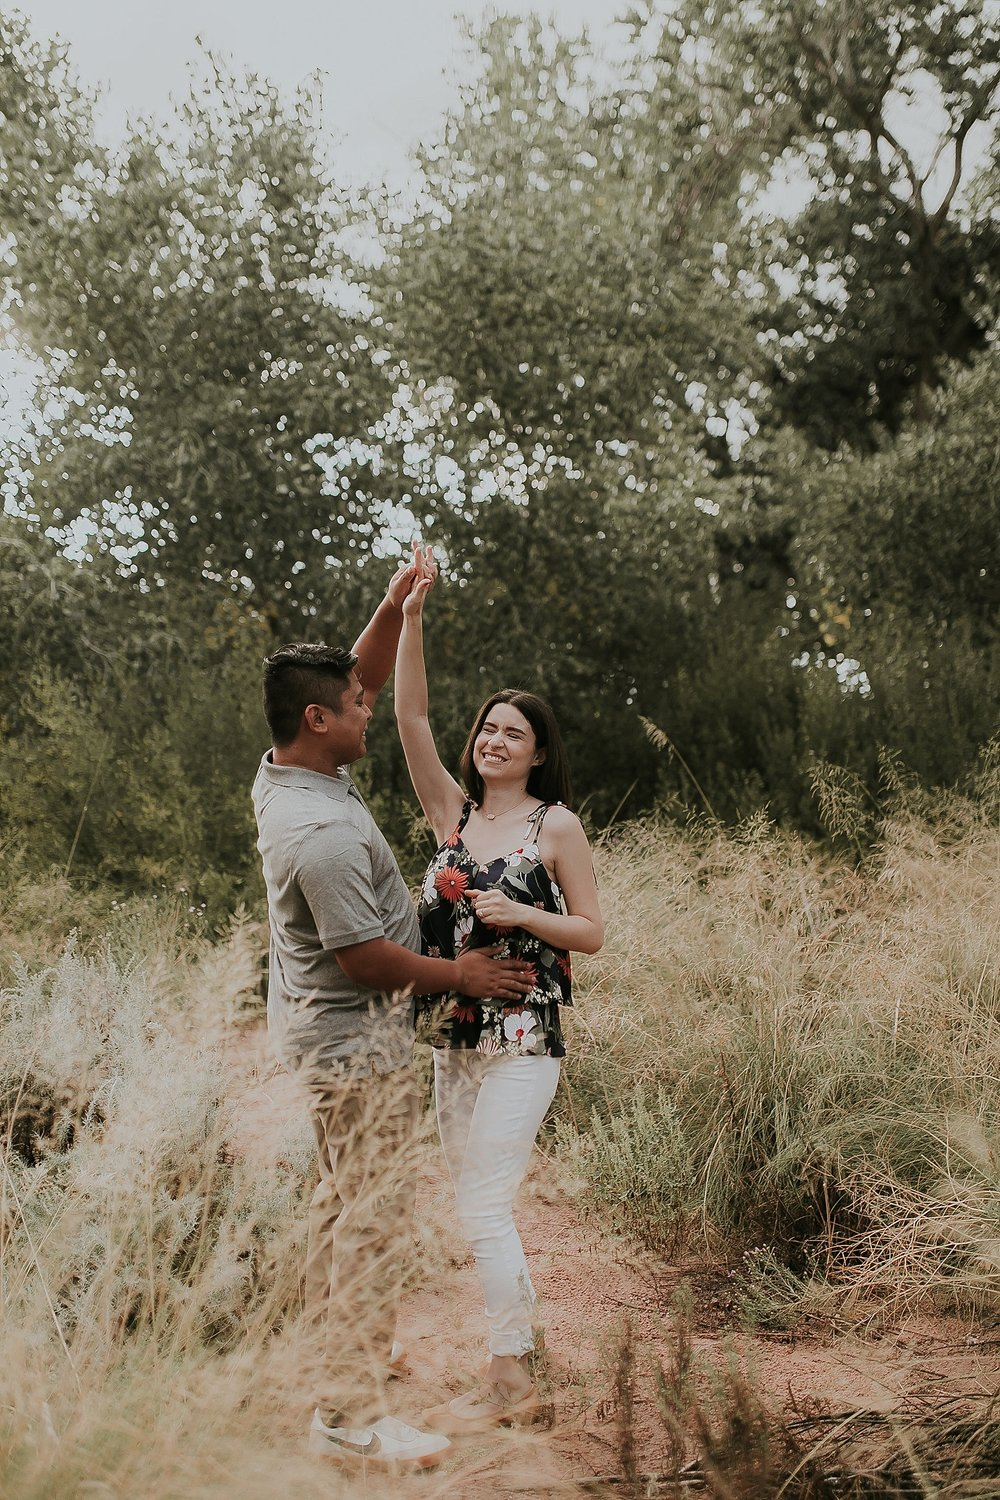 Alicia+lucia+photography+-+albuquerque+wedding+photographer+-+albuquerque+wedding+photography+-+new+mexico+wedding+photographer+-+new+mexico+engagement_0030.jpg